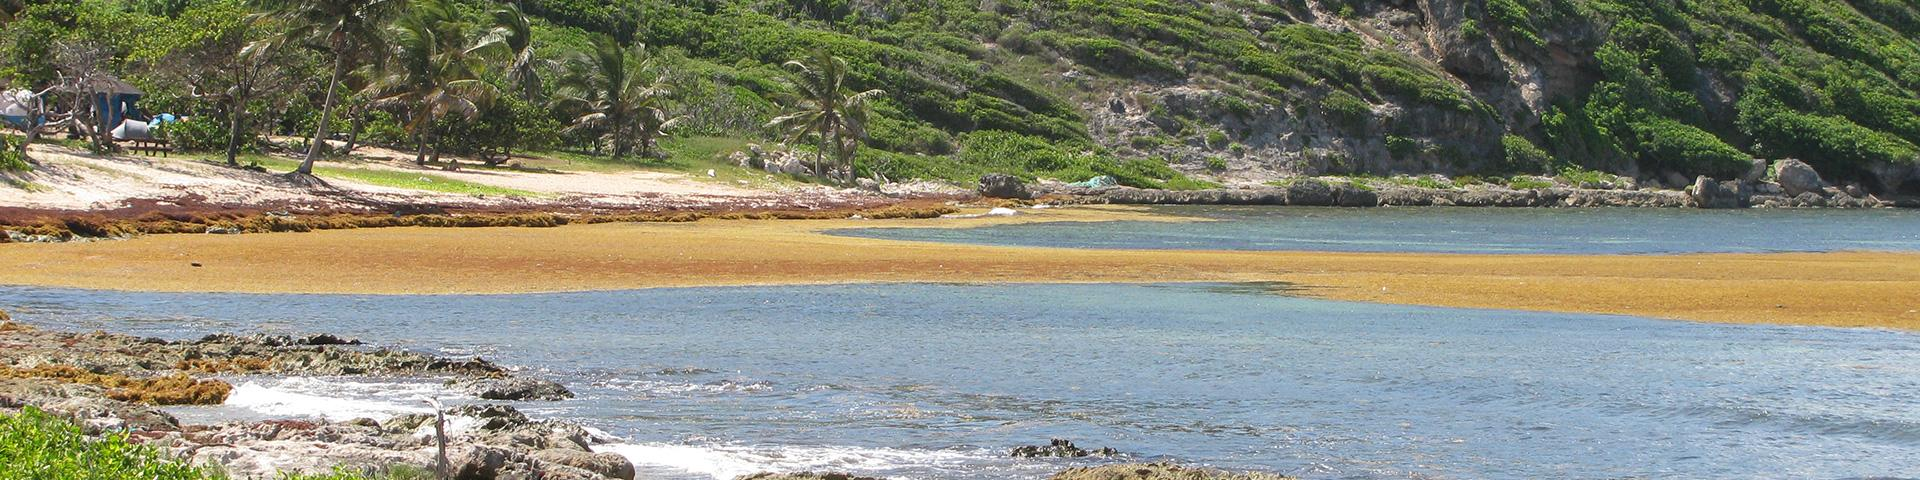 Arrival of the Sargassum, Guadeloupe